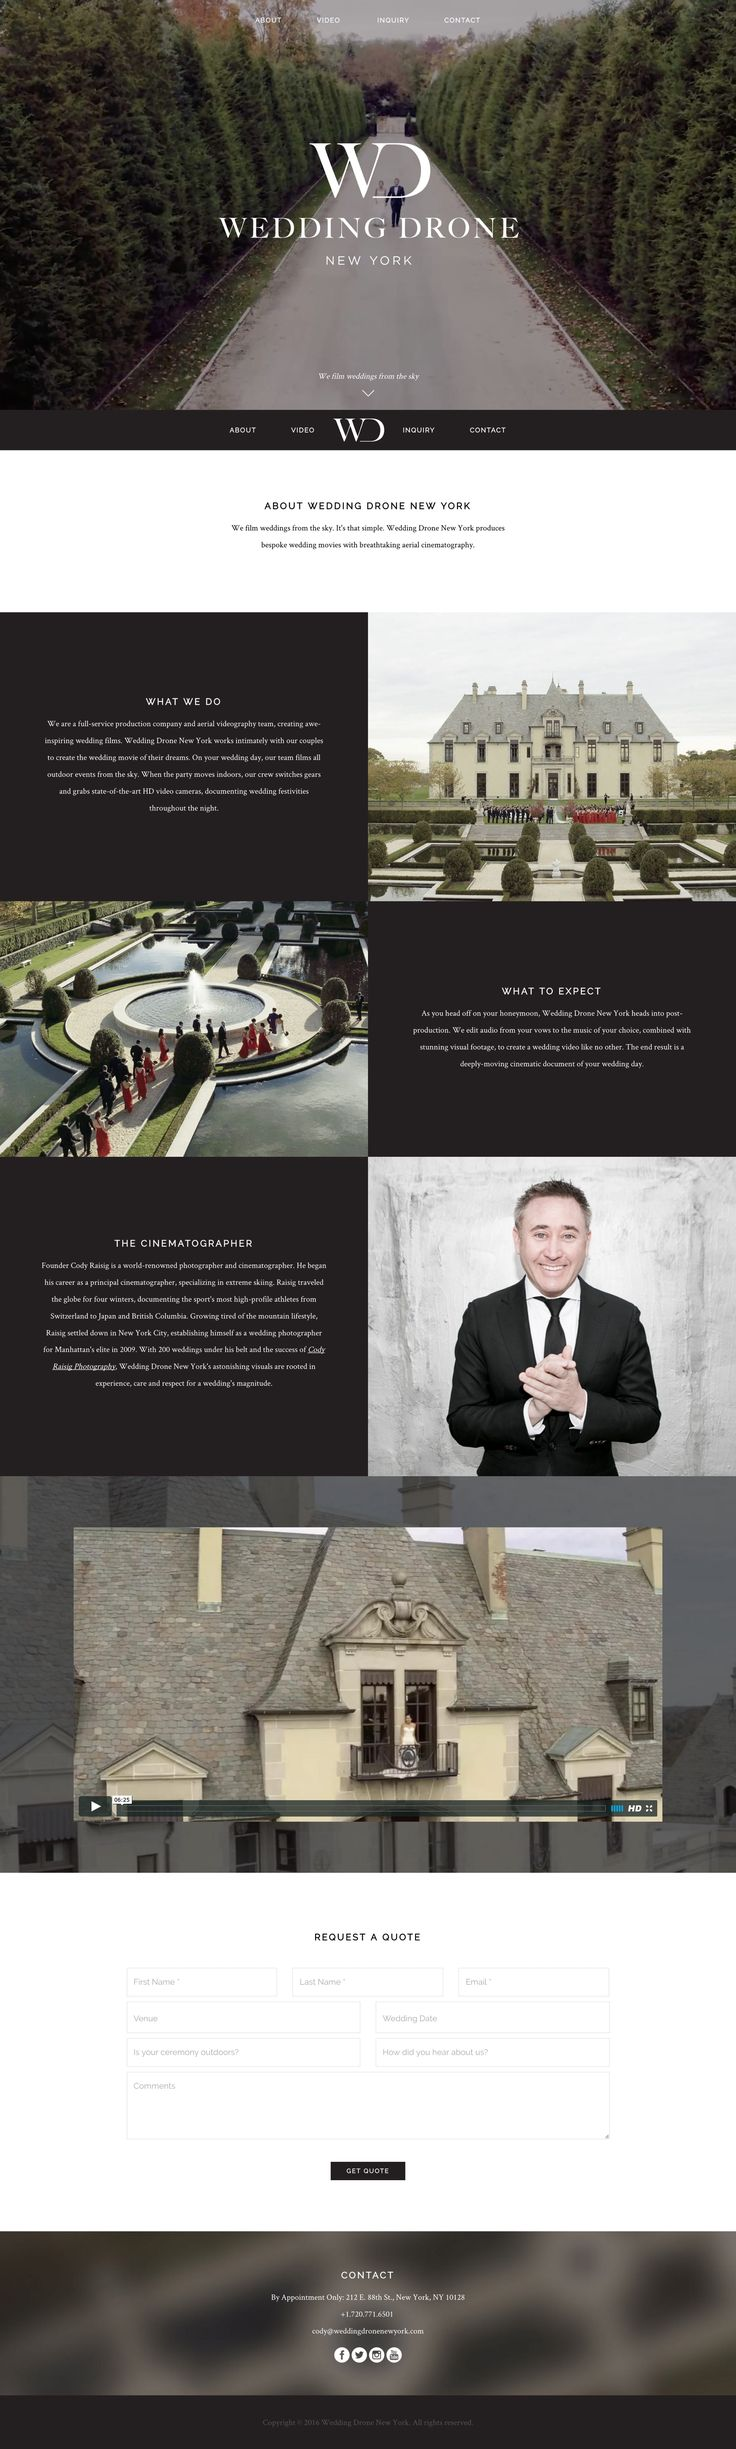 Solid landing page promoting a niche wedding drone photography service based in New York. Excellent intro video followed by a perfect amount of content and imagery within the One Pager. Cheers for the build notes!